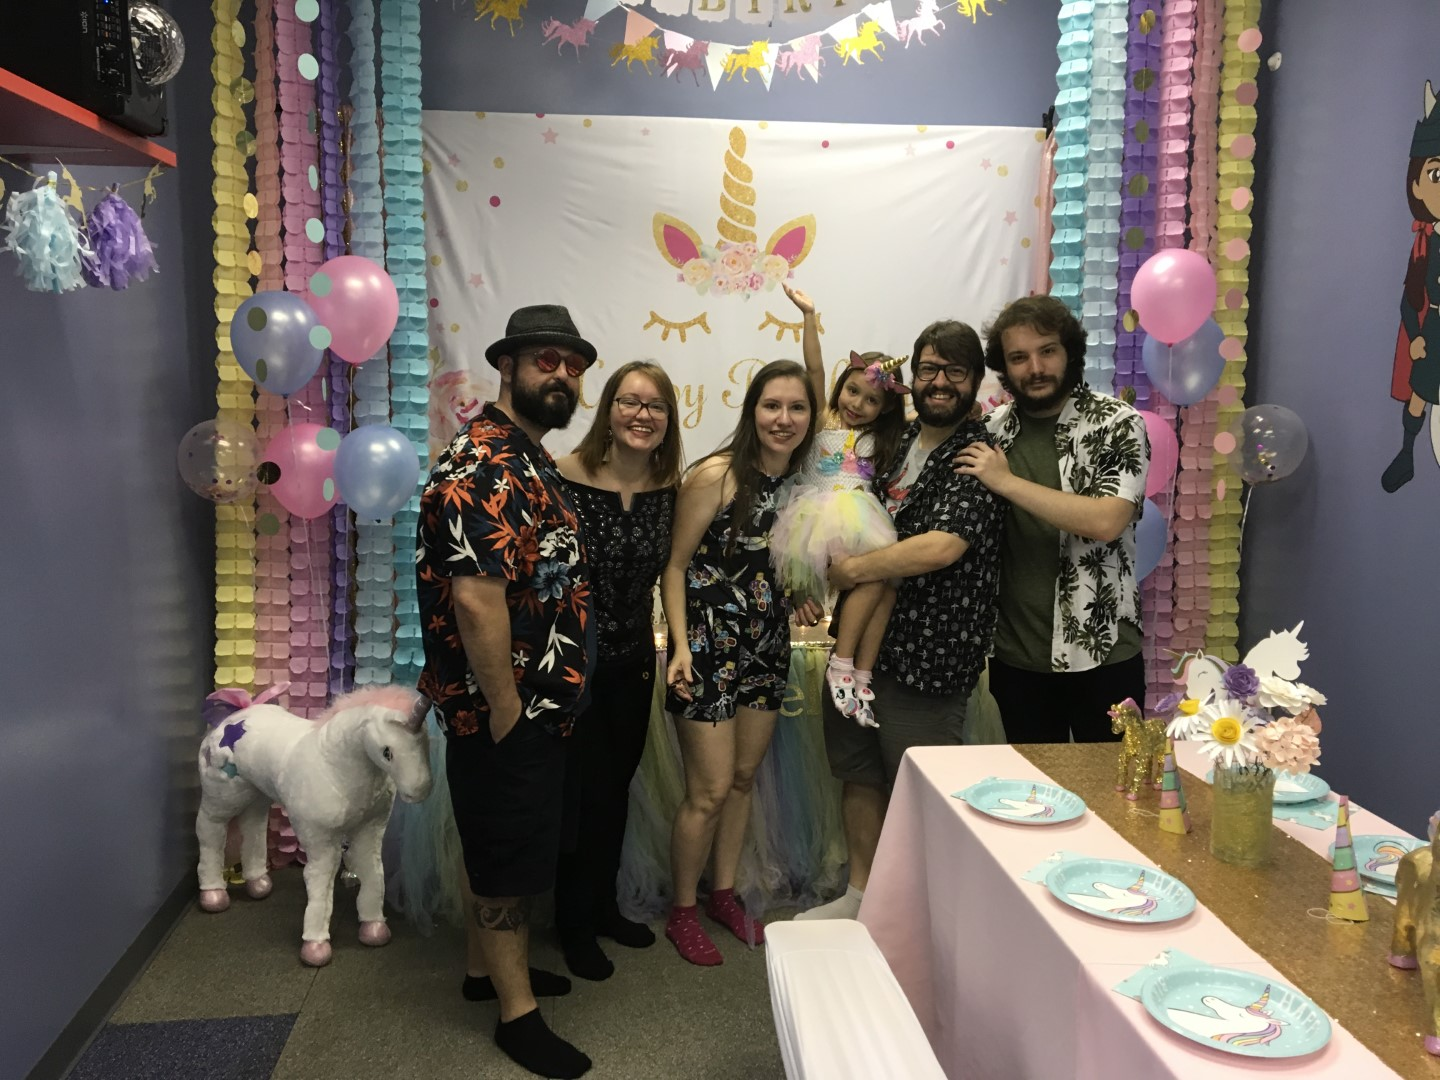 unicorn themed 5 year old birthday party orlando fl (17).JPG